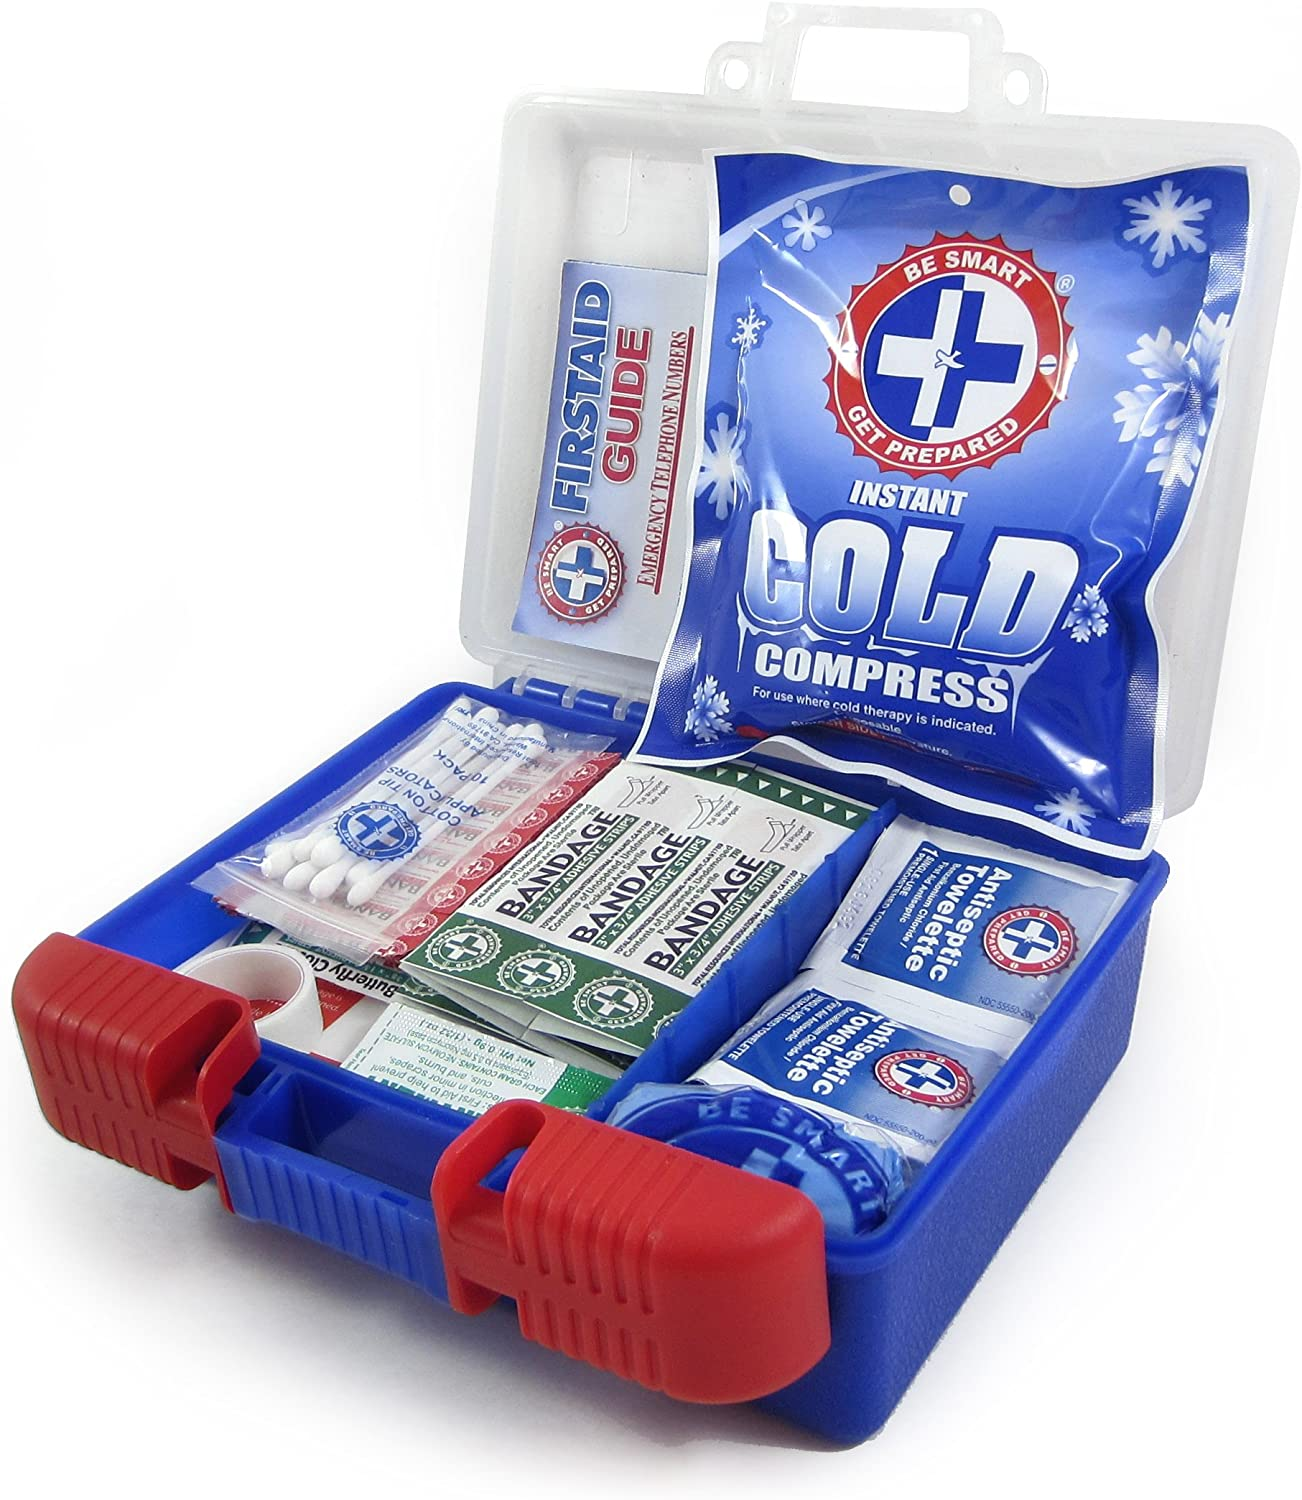 Be Smart Get Prepared 100Piece First Aid Kit